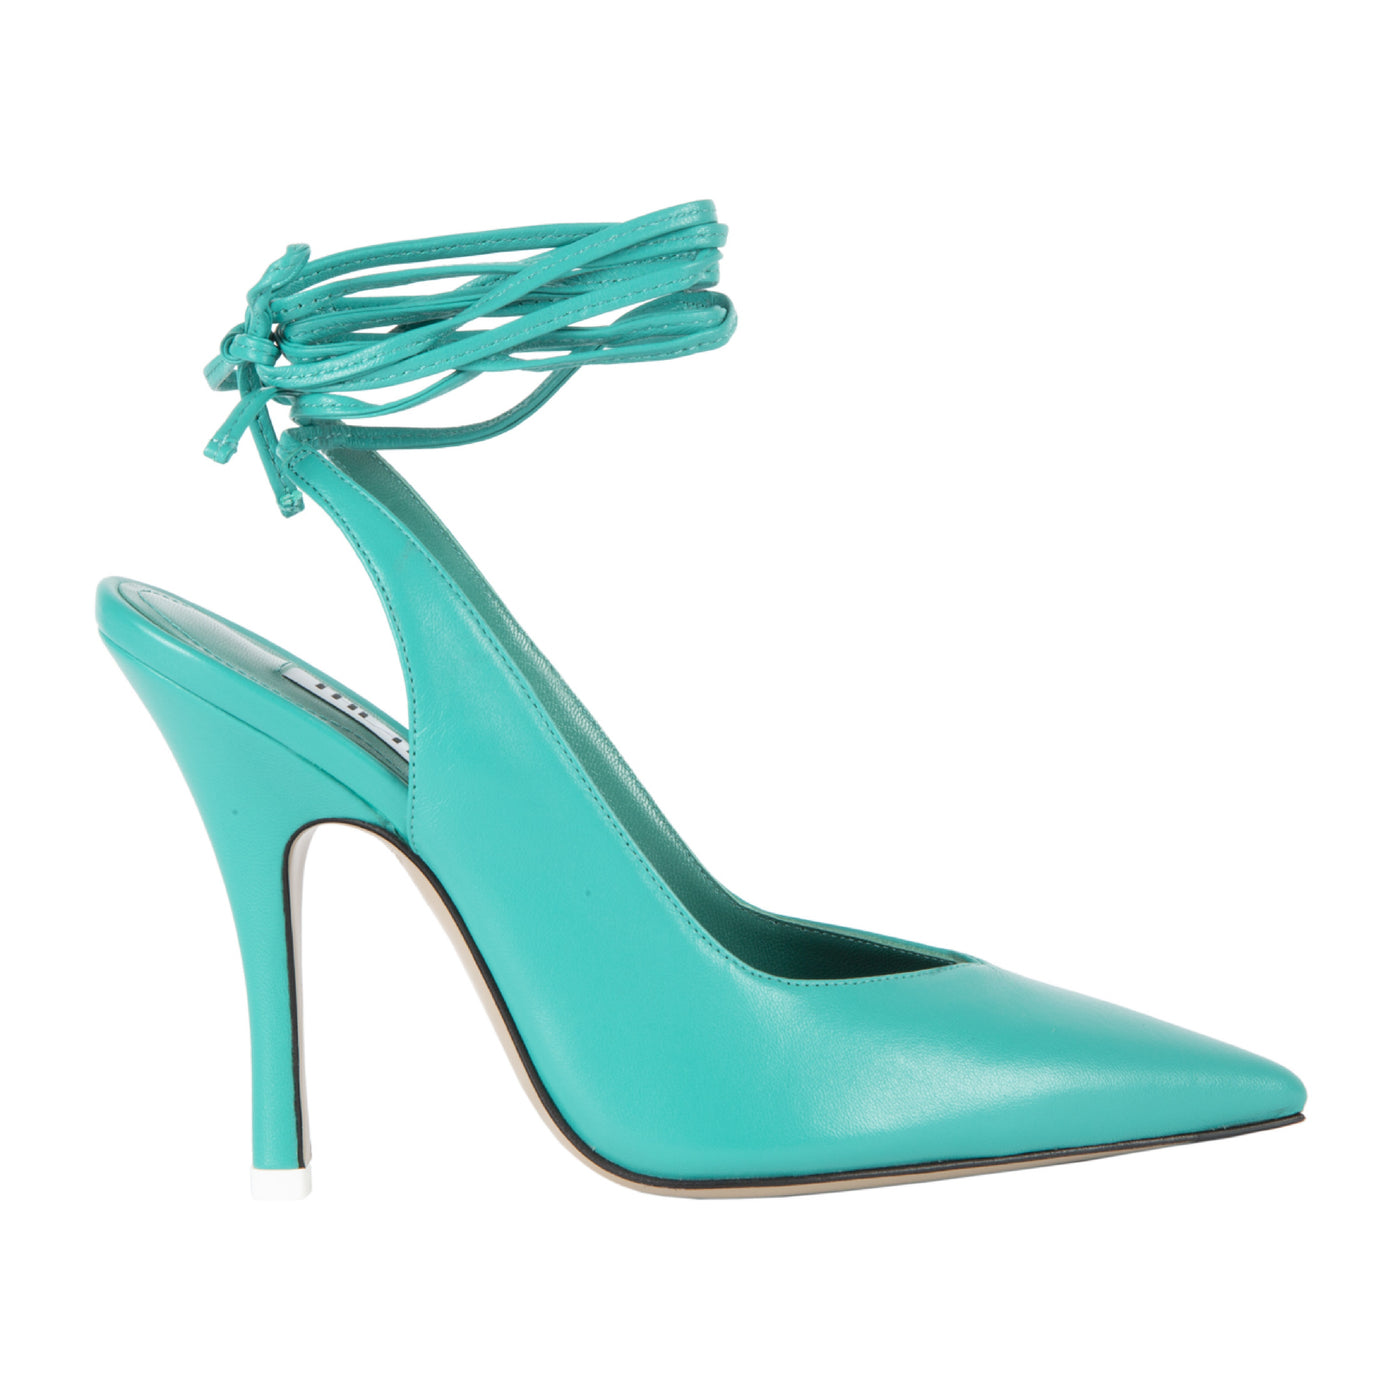 Load image into Gallery viewer, ATTICO ANKLE-WRAP LEATHER SLINGBACK PUMPS GREEN